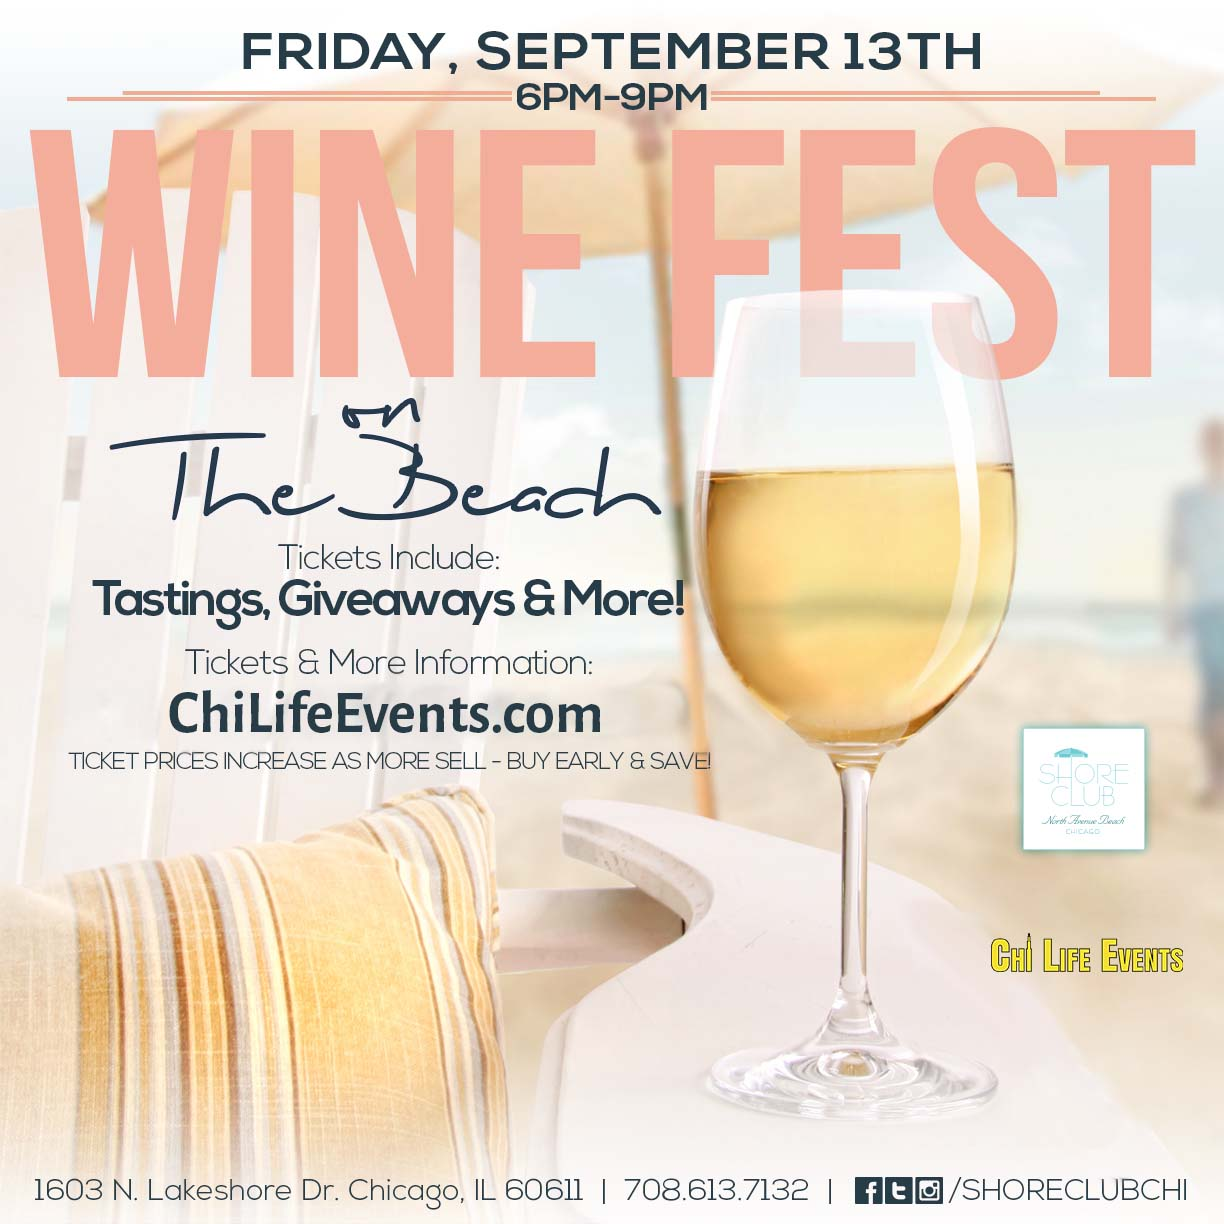 Wine Fest on North Avenue Beach Chicago - Tickets include wine tastings, giveaways & MORE! We will have a variety of different wines from all over the world available for sampling!